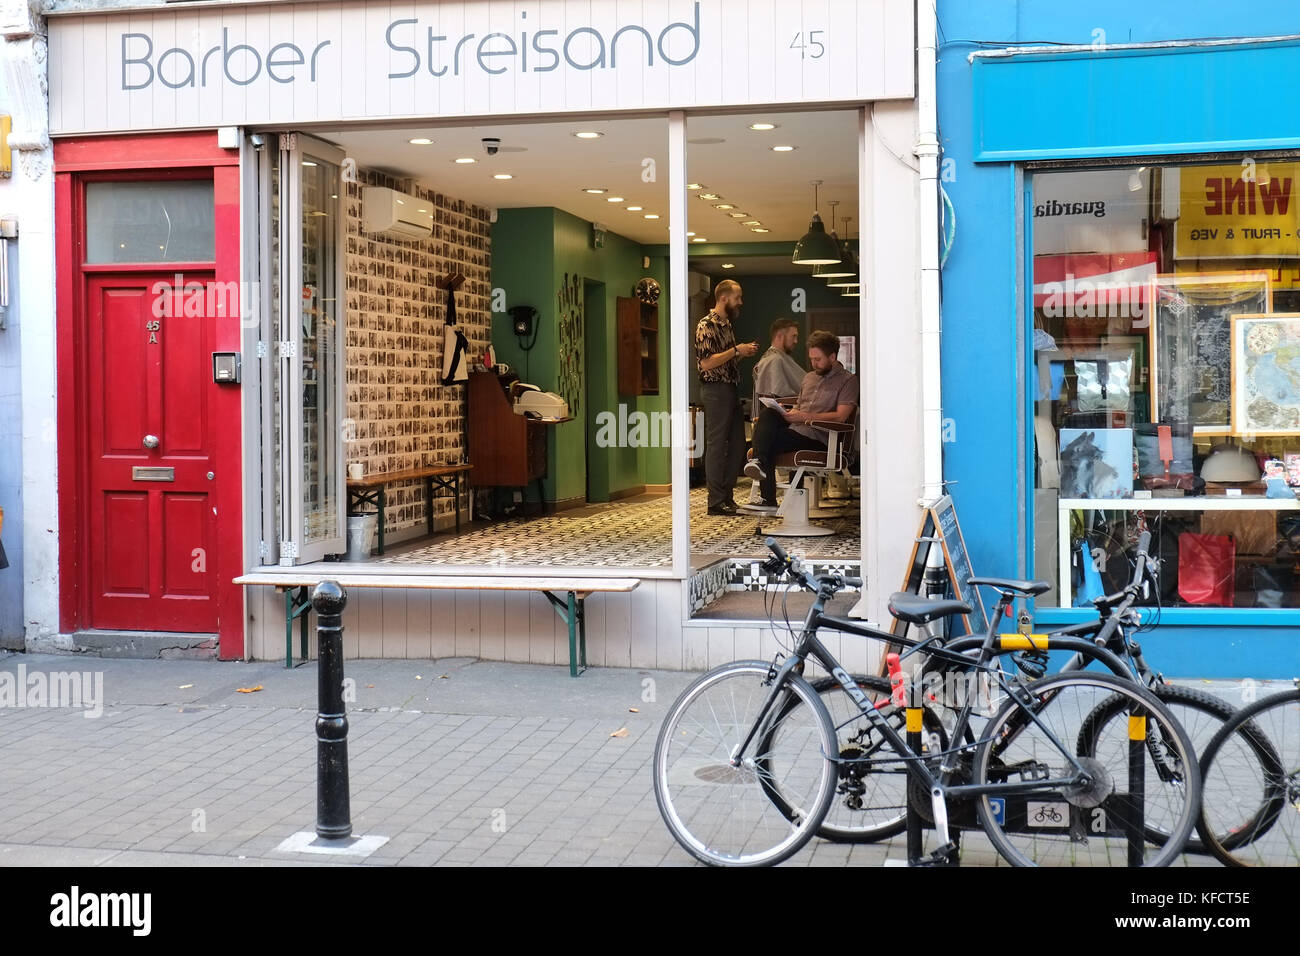 Witty named barbers at 45 Exmouth Market London UK Baber Streisand. - Stock Image